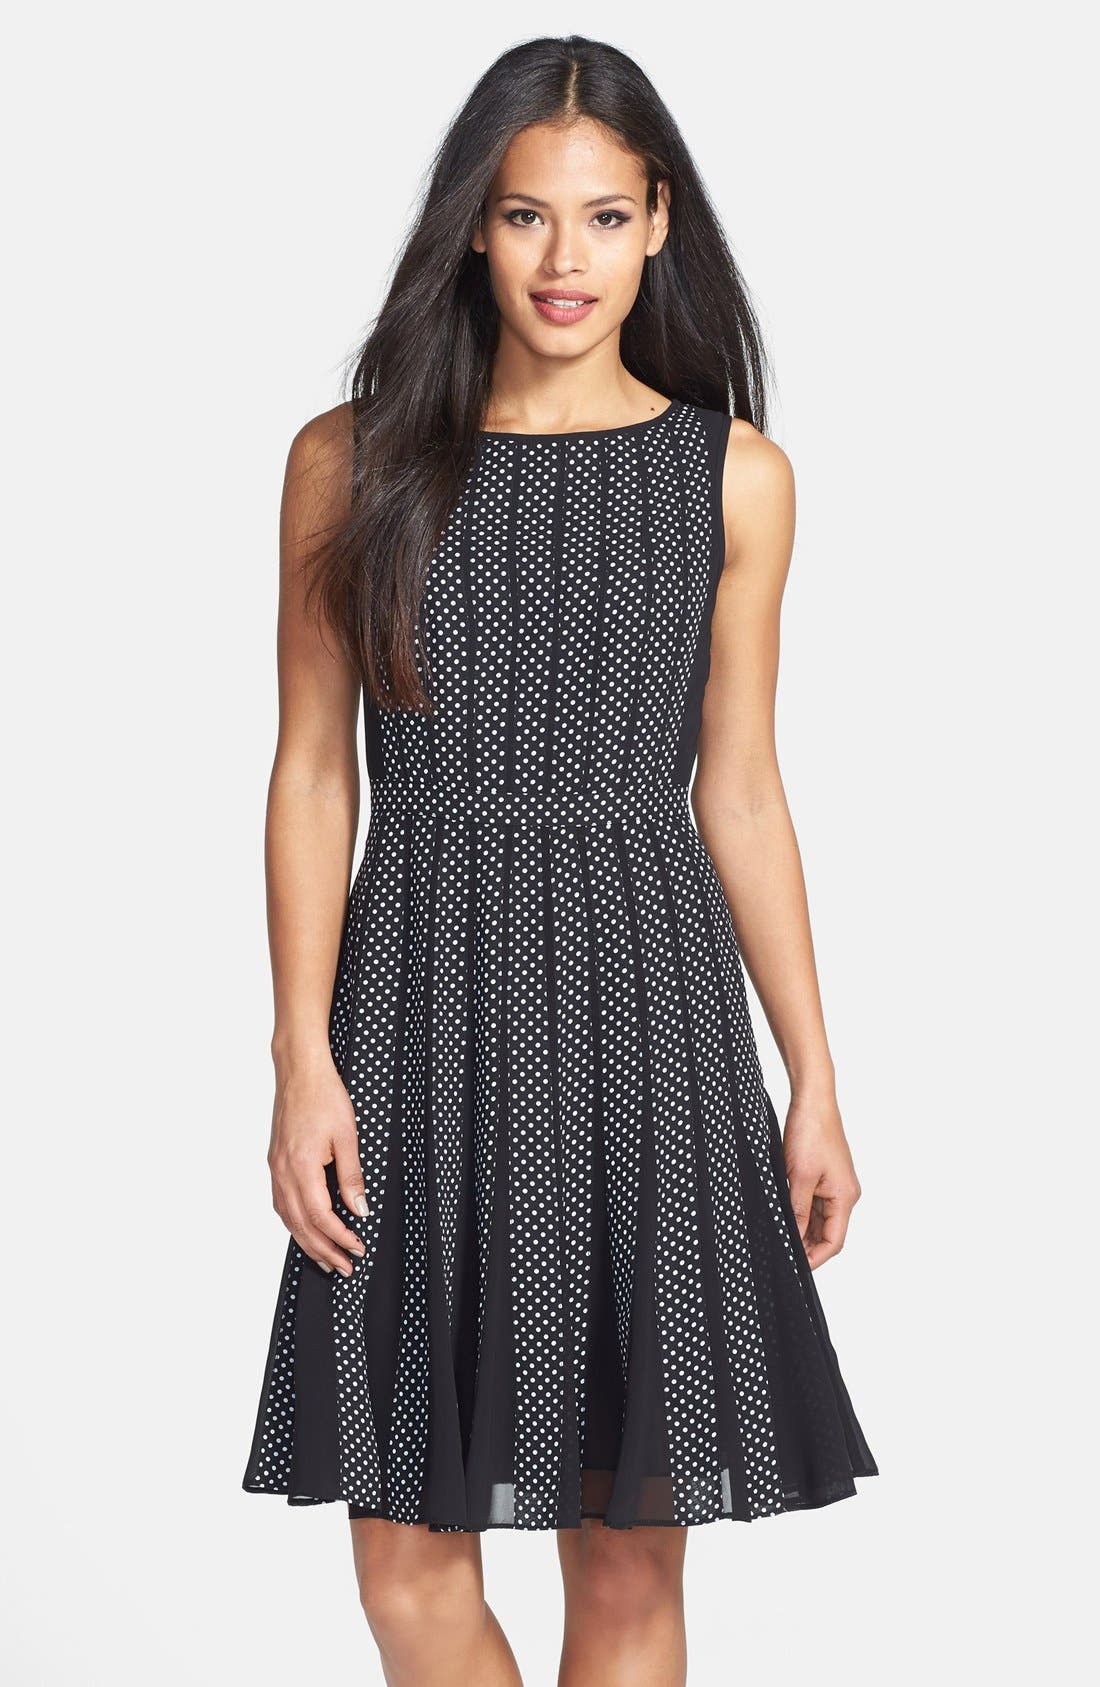 Main Image - Adrianna Papell Polka Dot Chiffon Fit & Flare Dress